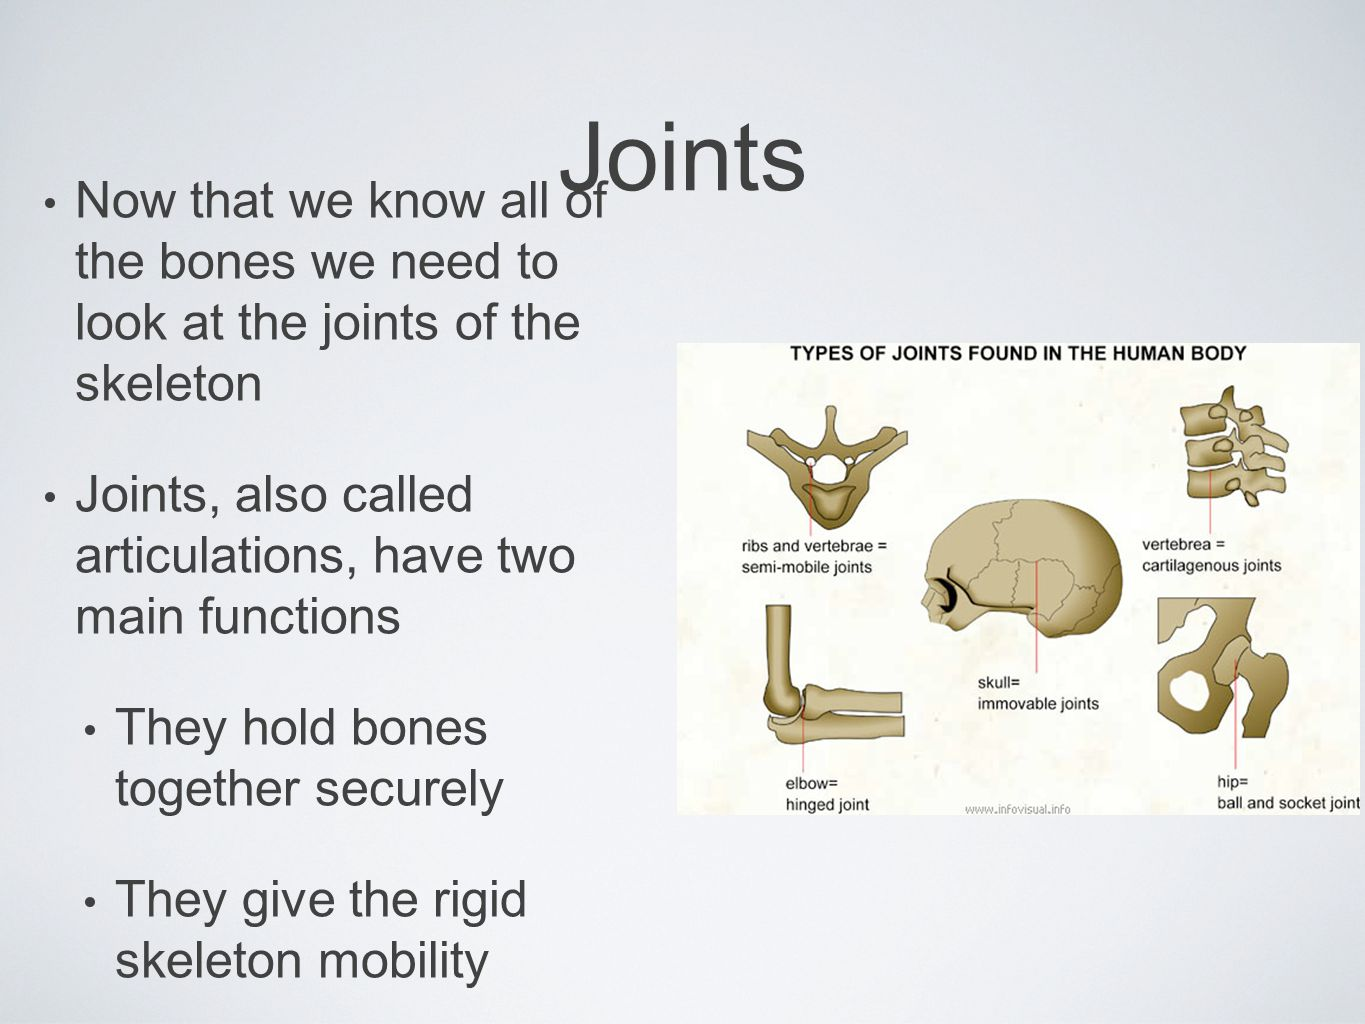 Joints Now that we know all of the bones we need to look at the joints of the skeleton.